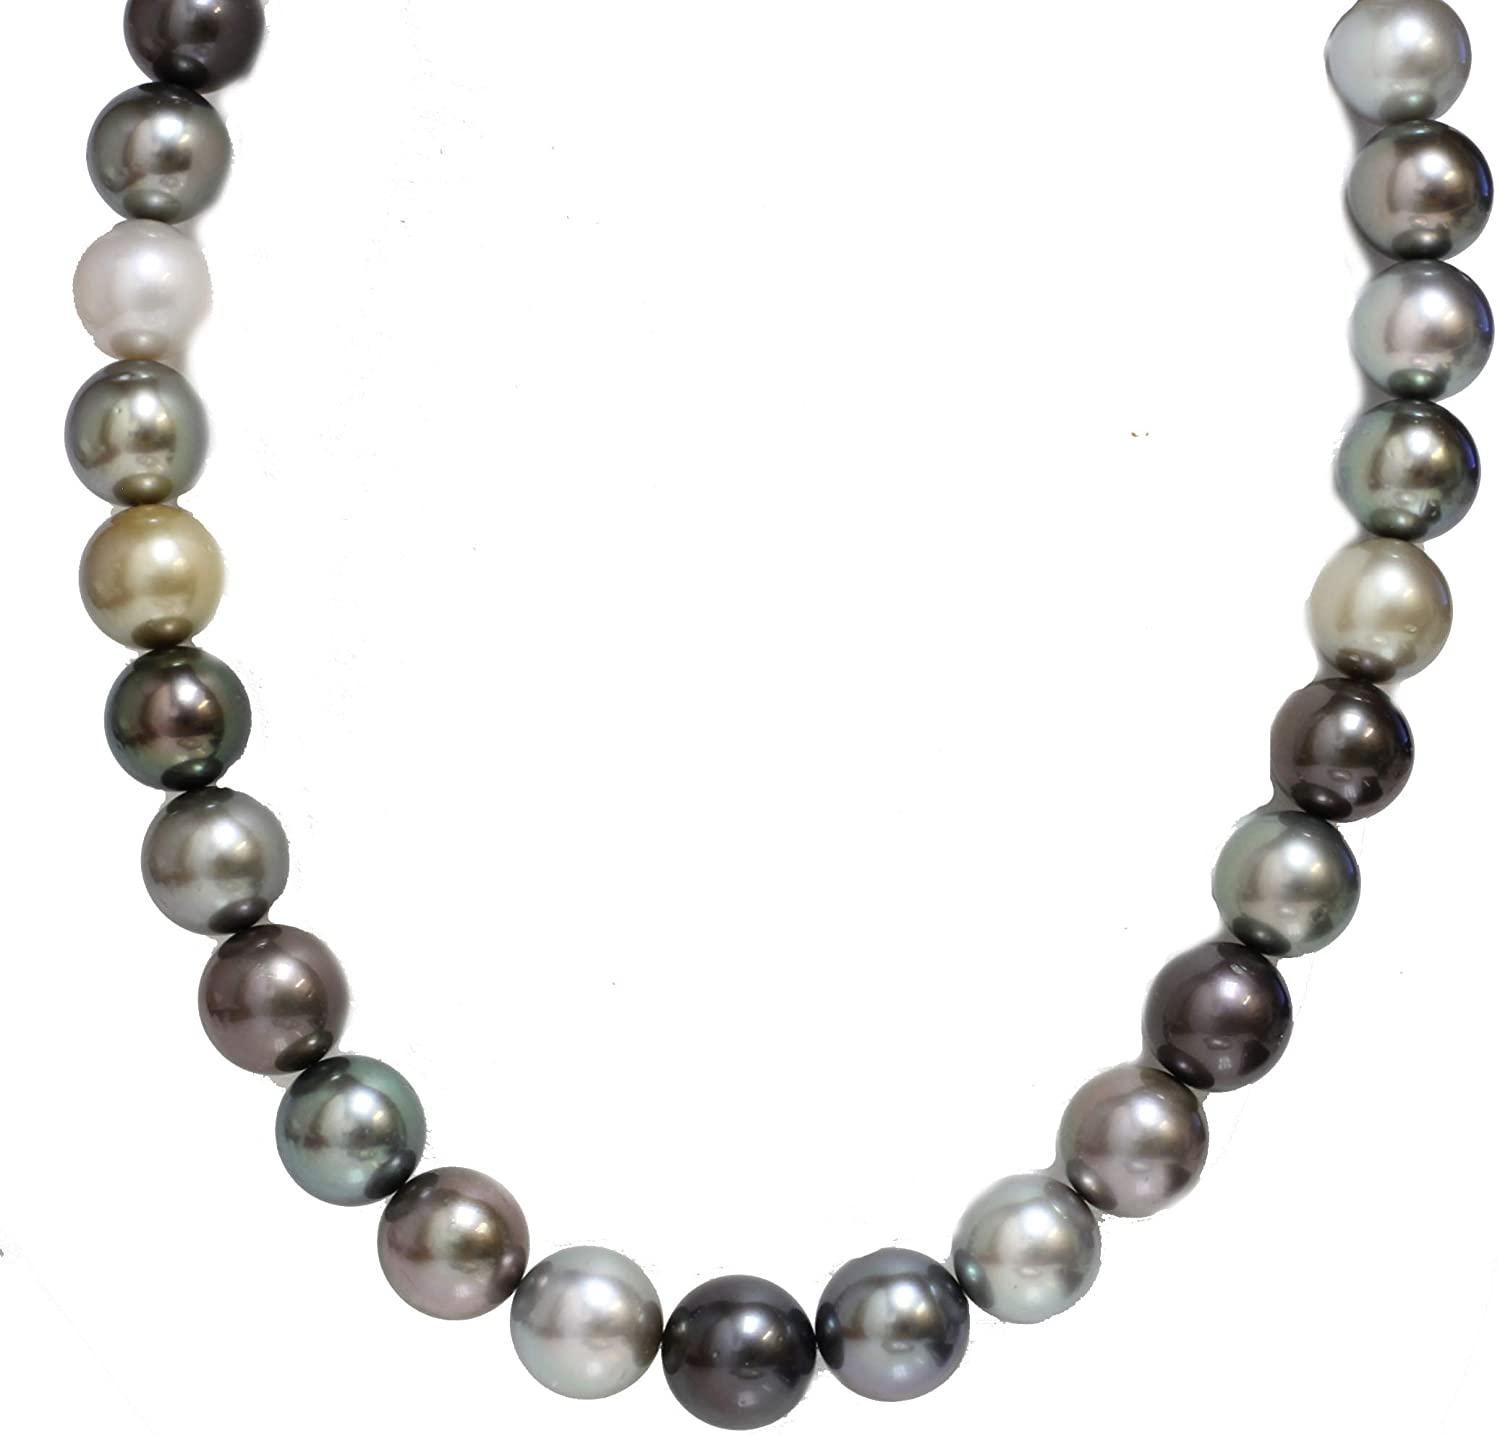 Tahitian South Sea Pearl Necklace Gift for Women AAA 14-13 mm Fancy Multicolor 20